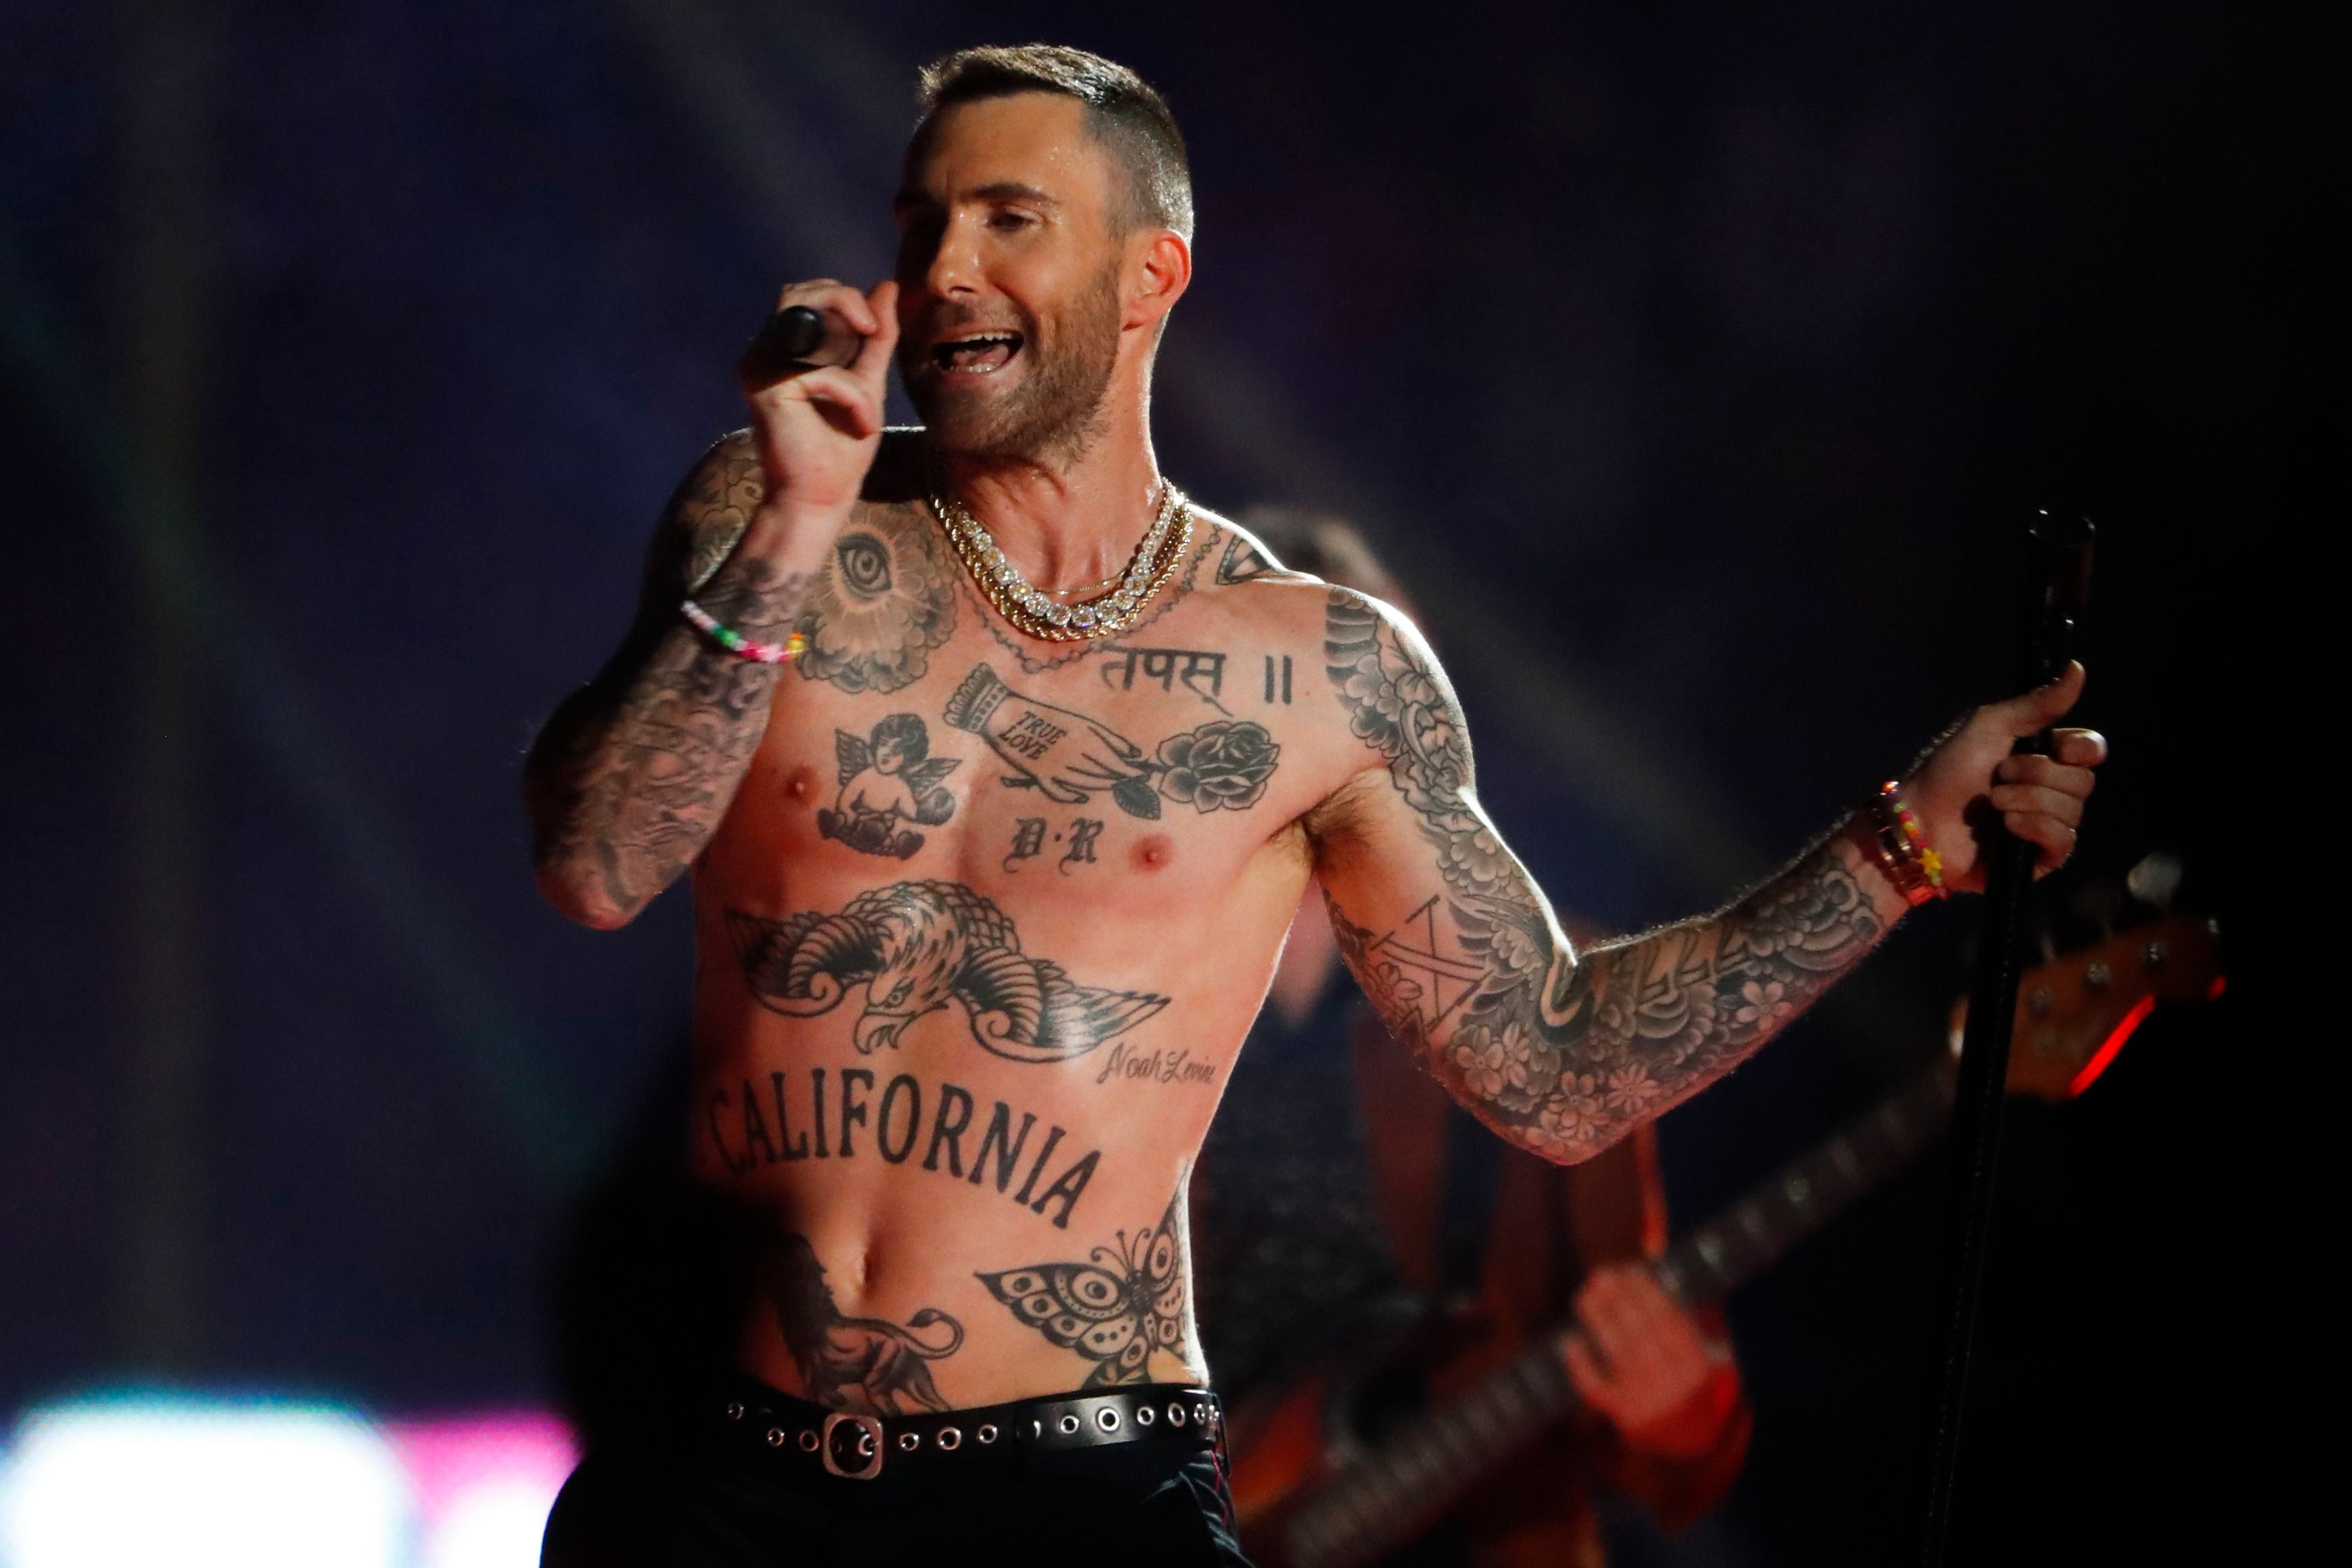 Adam Levine's Nipples at Super Bowl Prompt Complaints to FCC